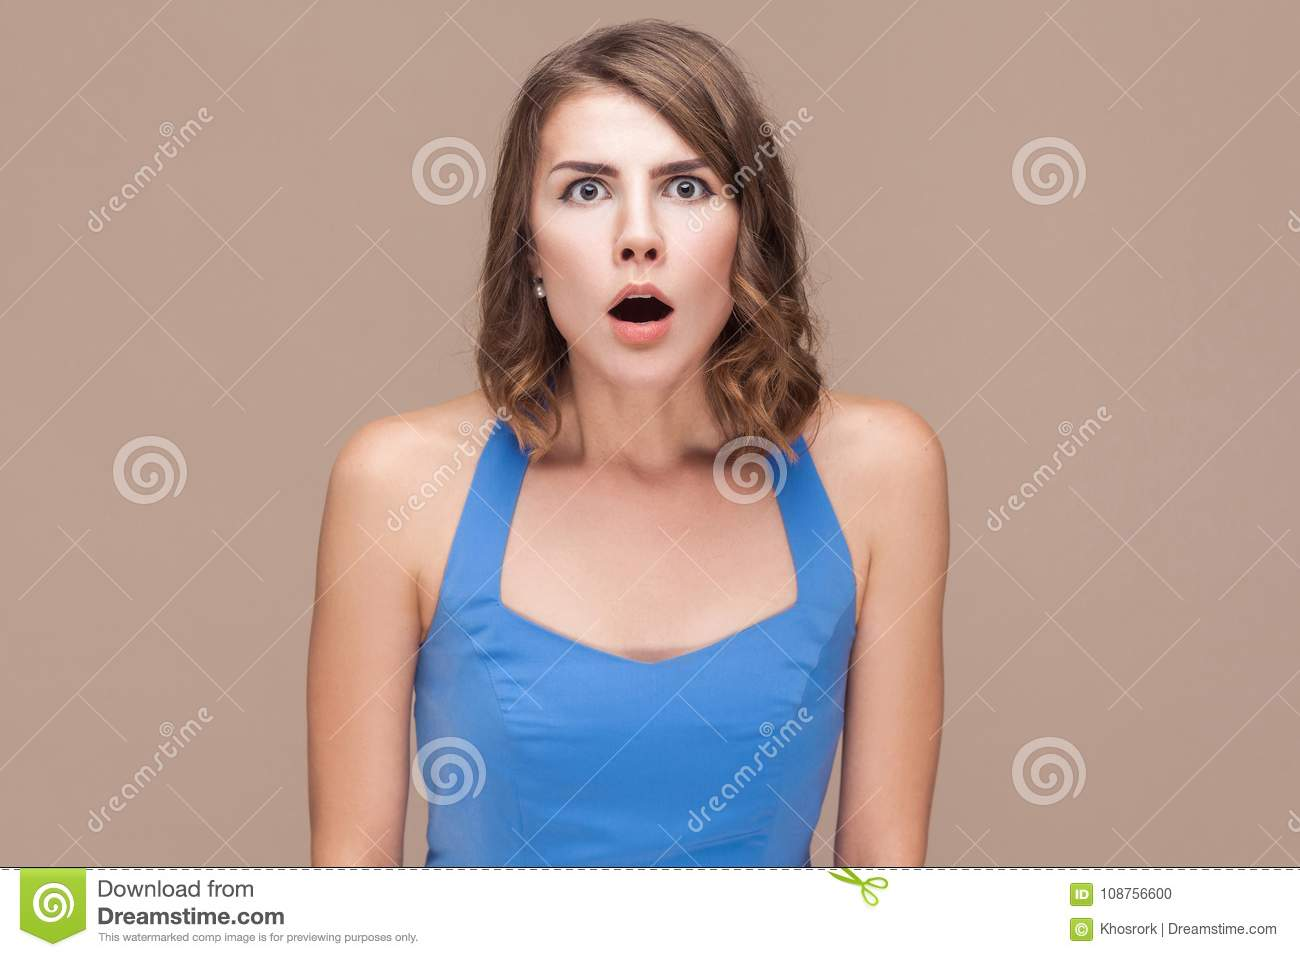 Wow! Shocked woman with big eyes looking at camera.